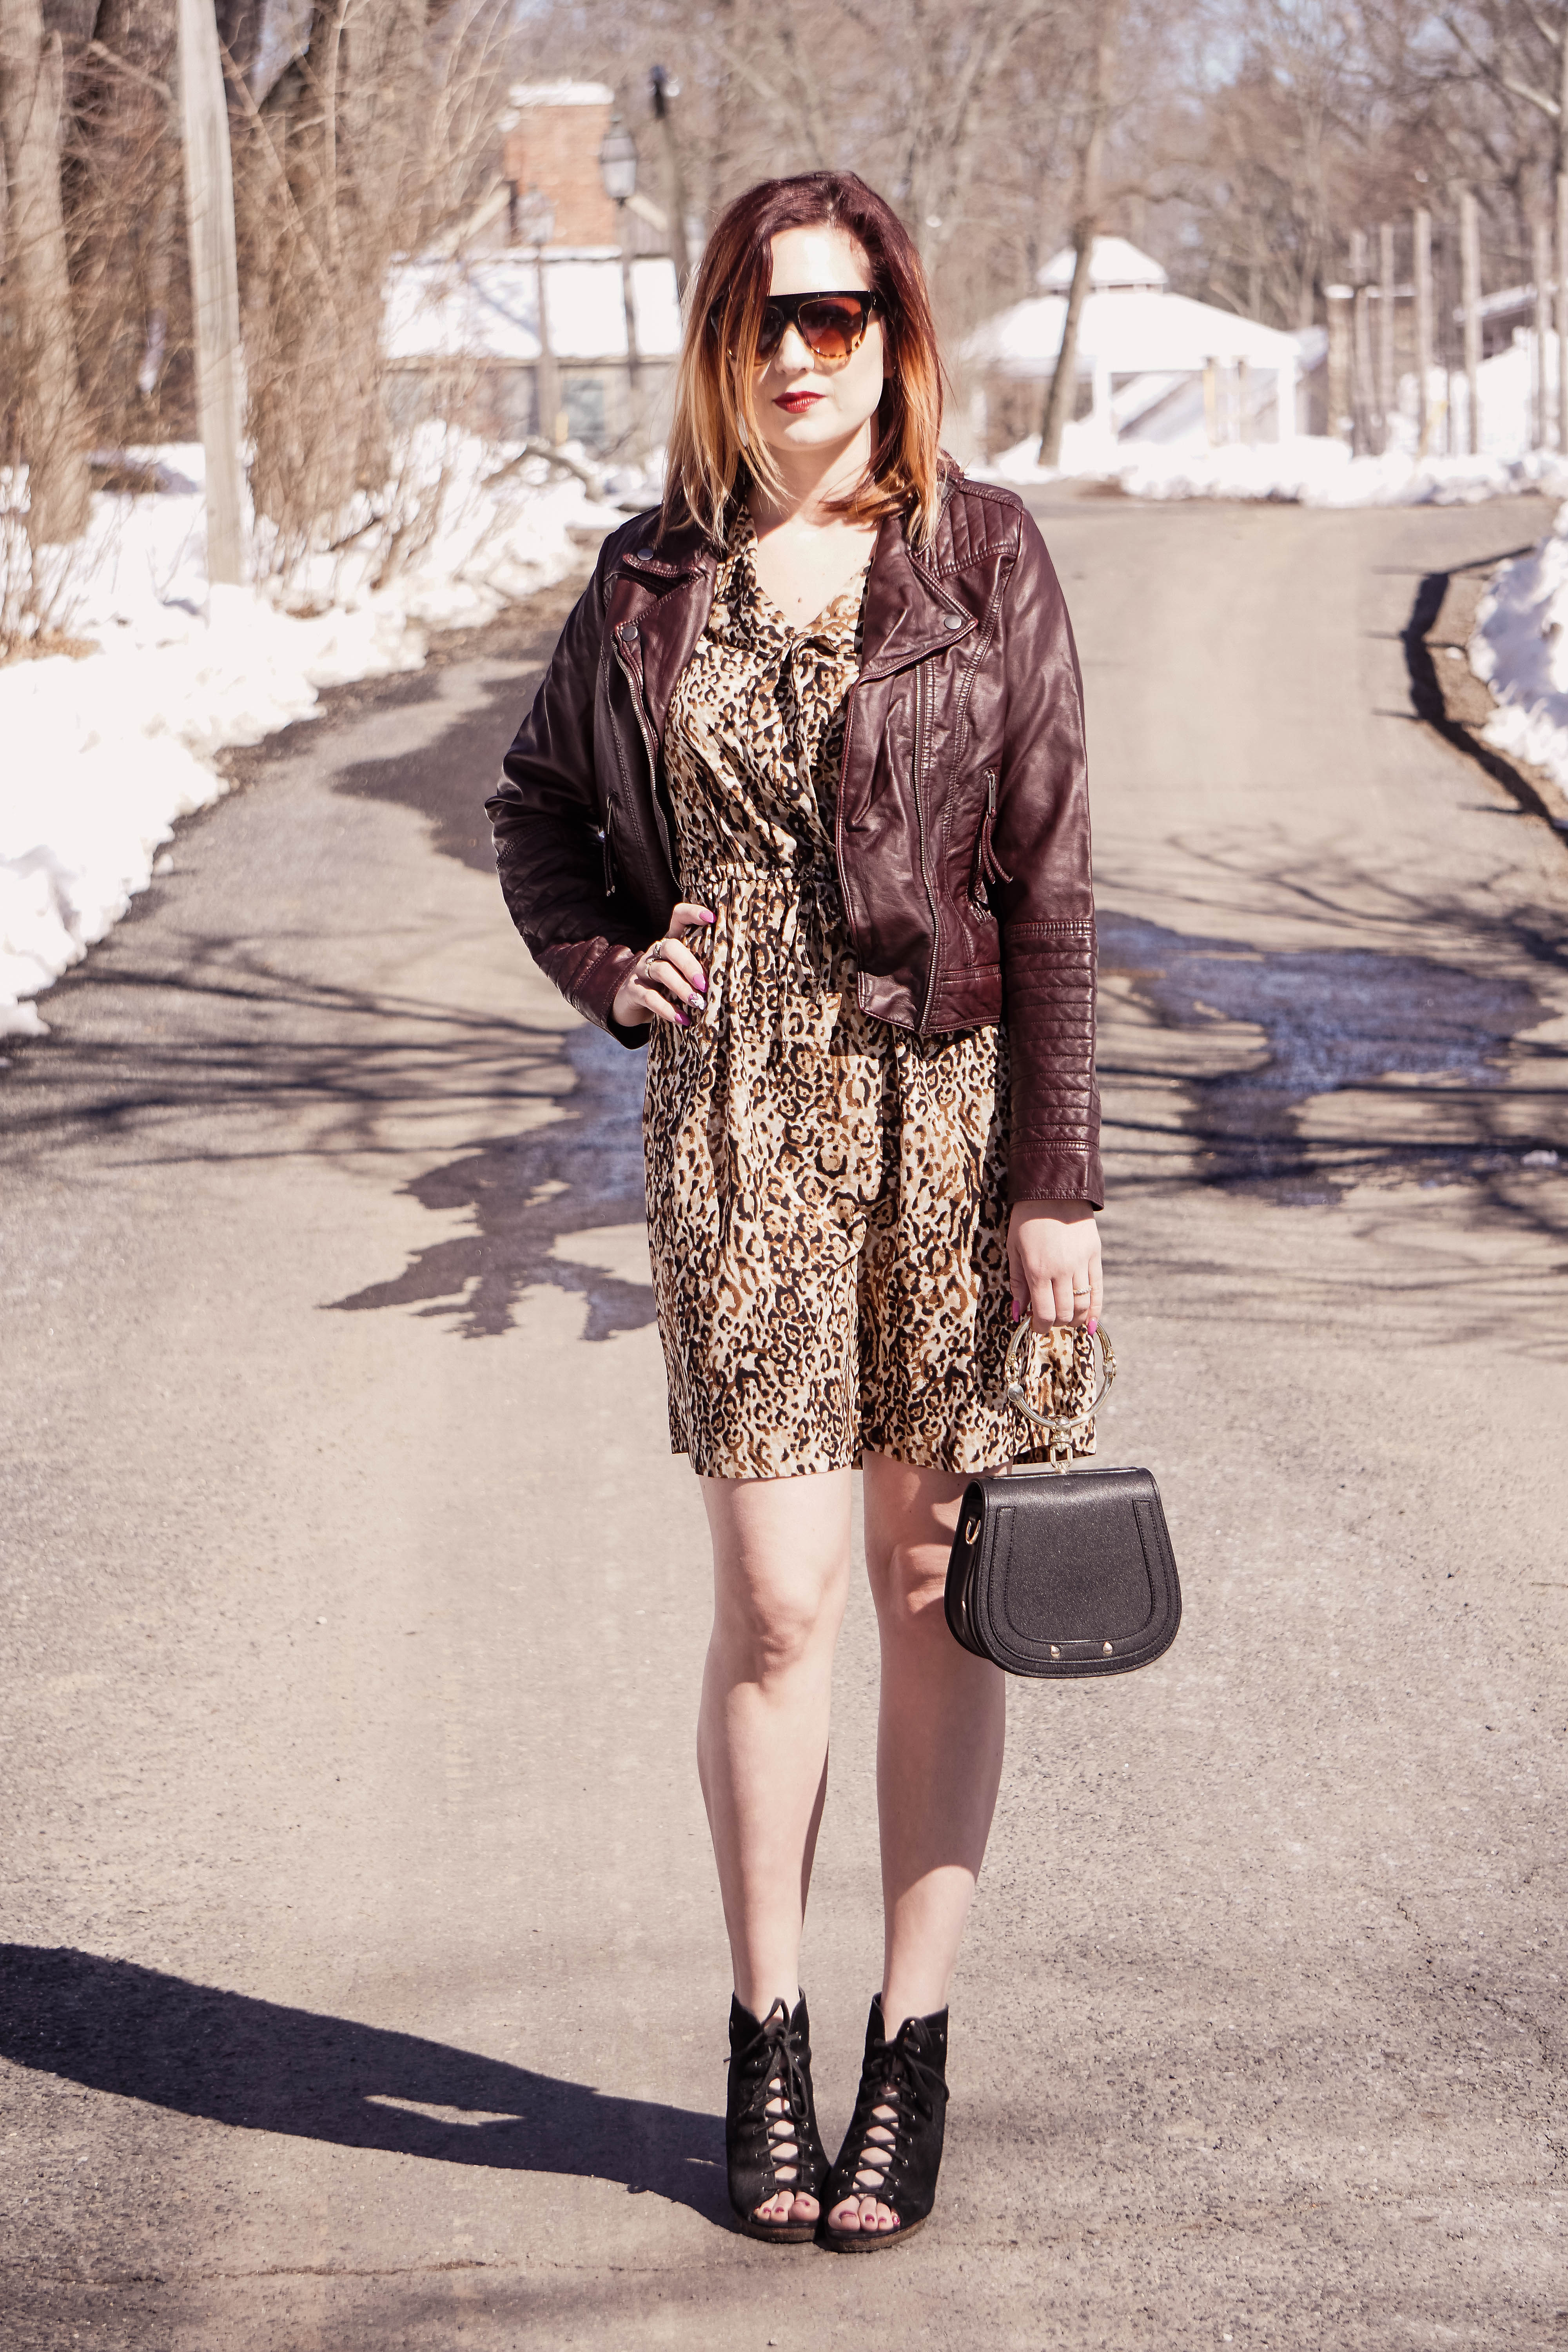 c941ce2390 leopard print dress with faux leather jacket 6 (1 of 1) - Jersey ...